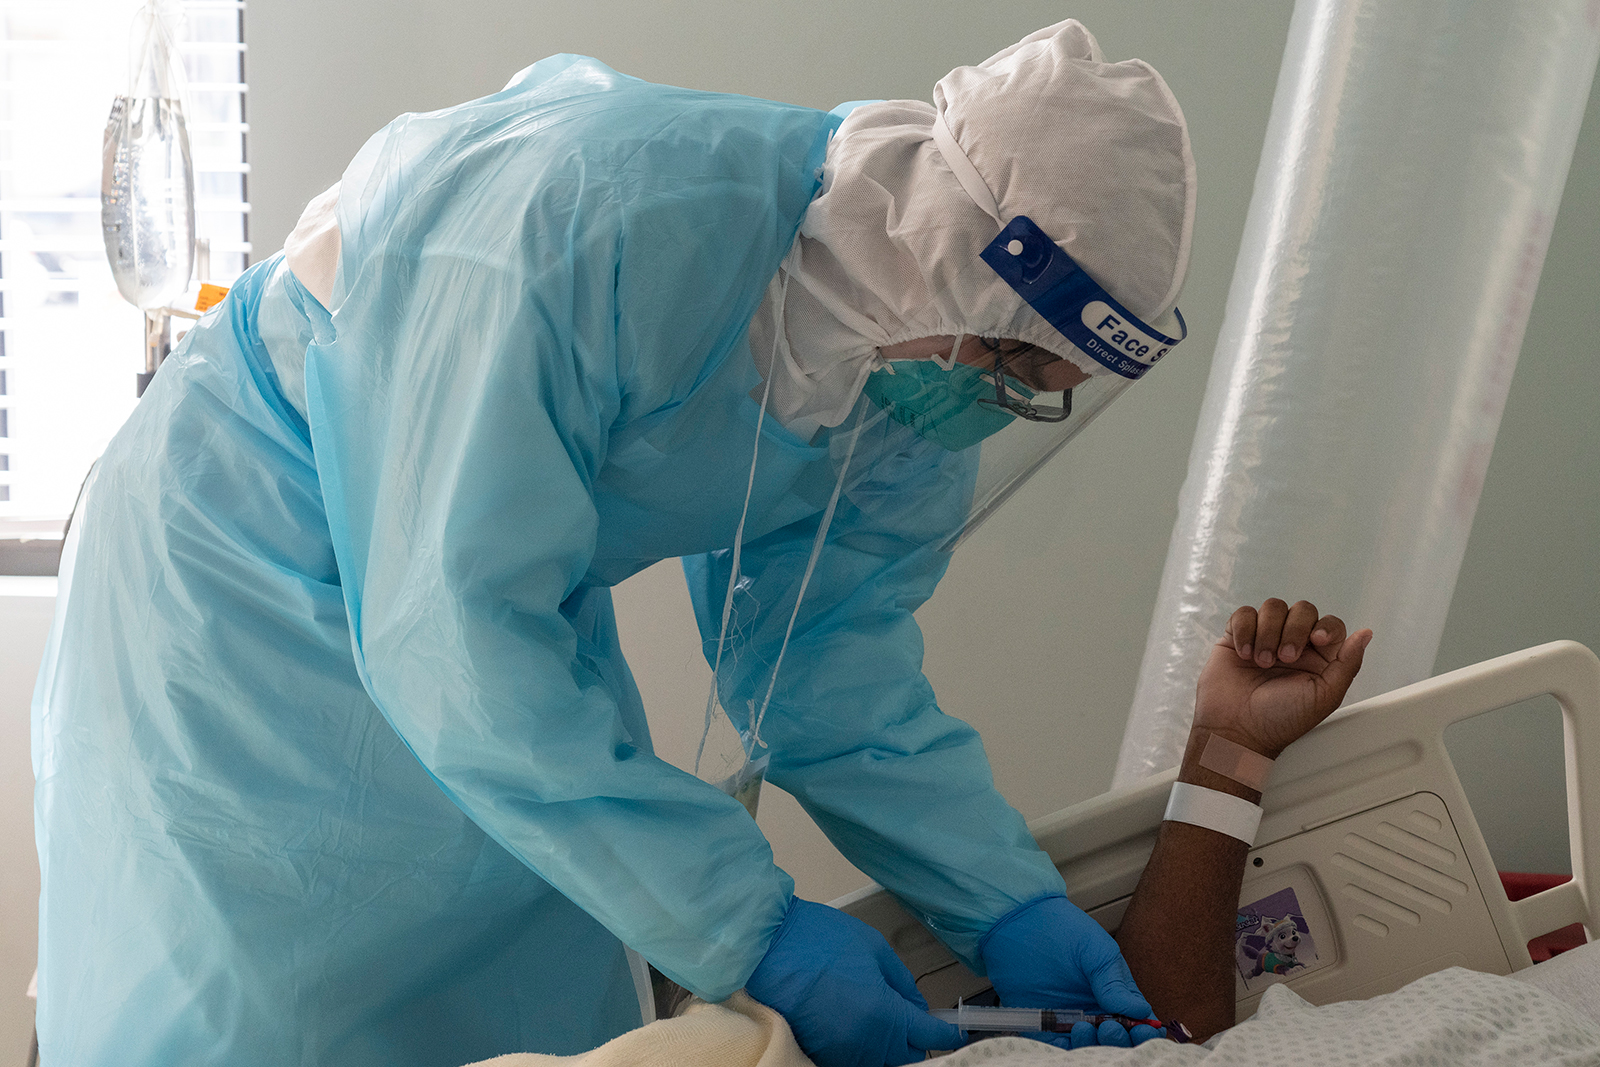 A medical worker takes a blood sample from a Covid-19 patient in the intensive care unit at the United Memorial Medical Center in Houston, on November 22.